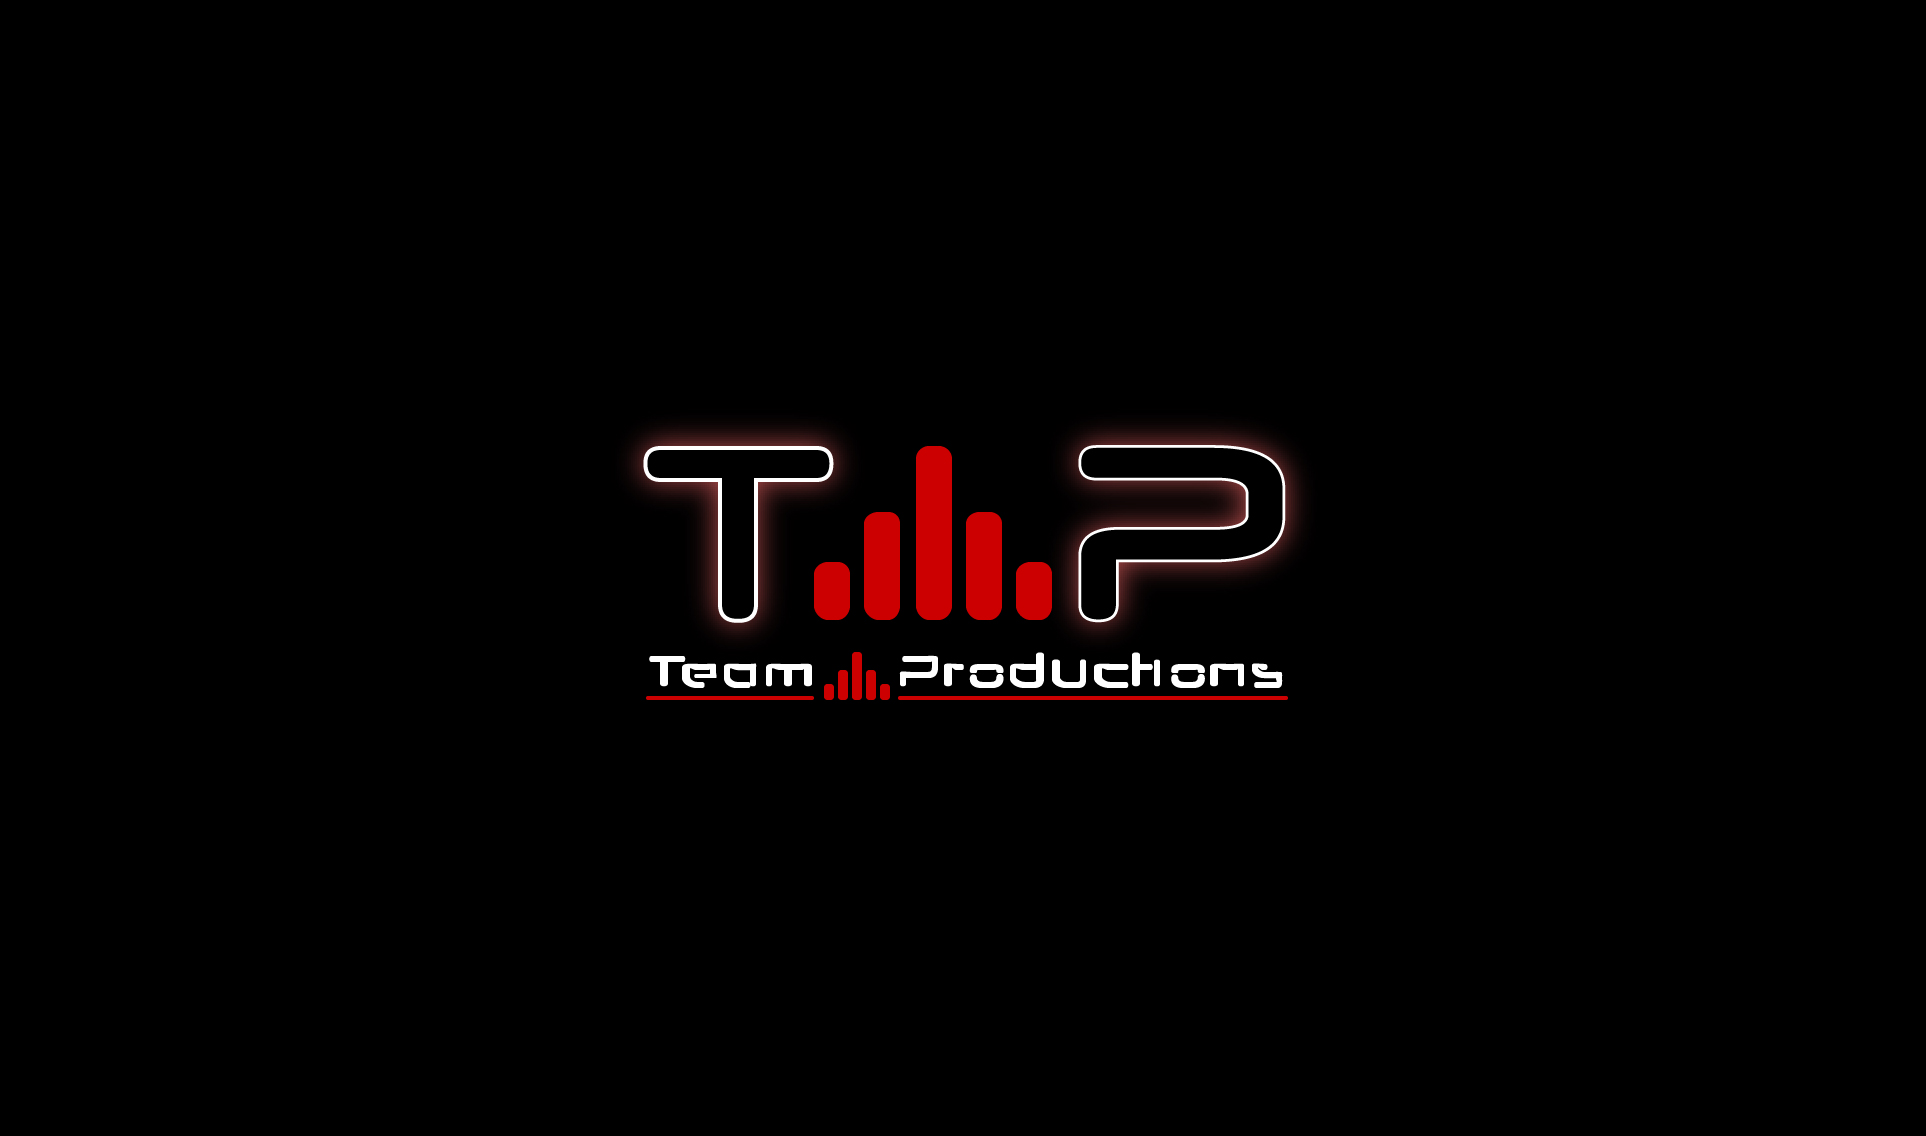 TEAM A PRODUCTIONS